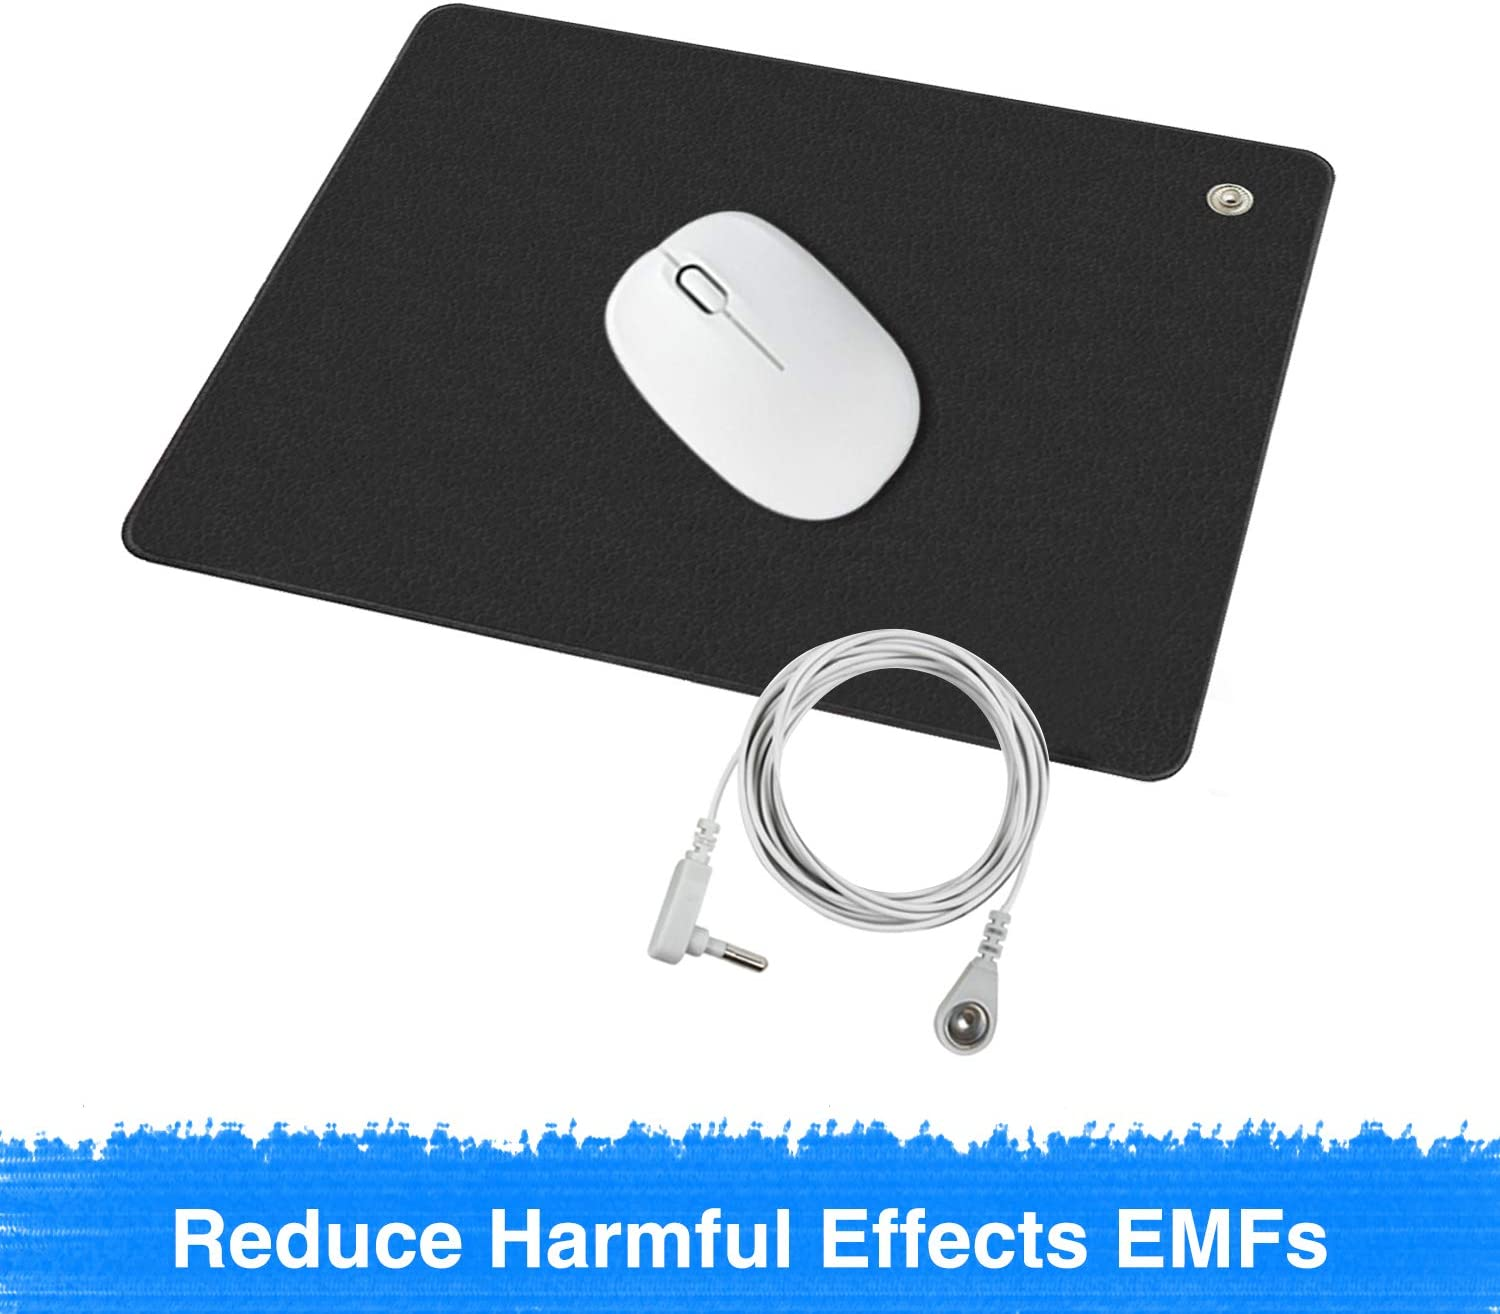 Grounding Computer Mouse Pad,Reduce Pain and Inflammation, Reconnect to The Earth EMF Recovery,11.8x9.8 inches Fits for Study and Working